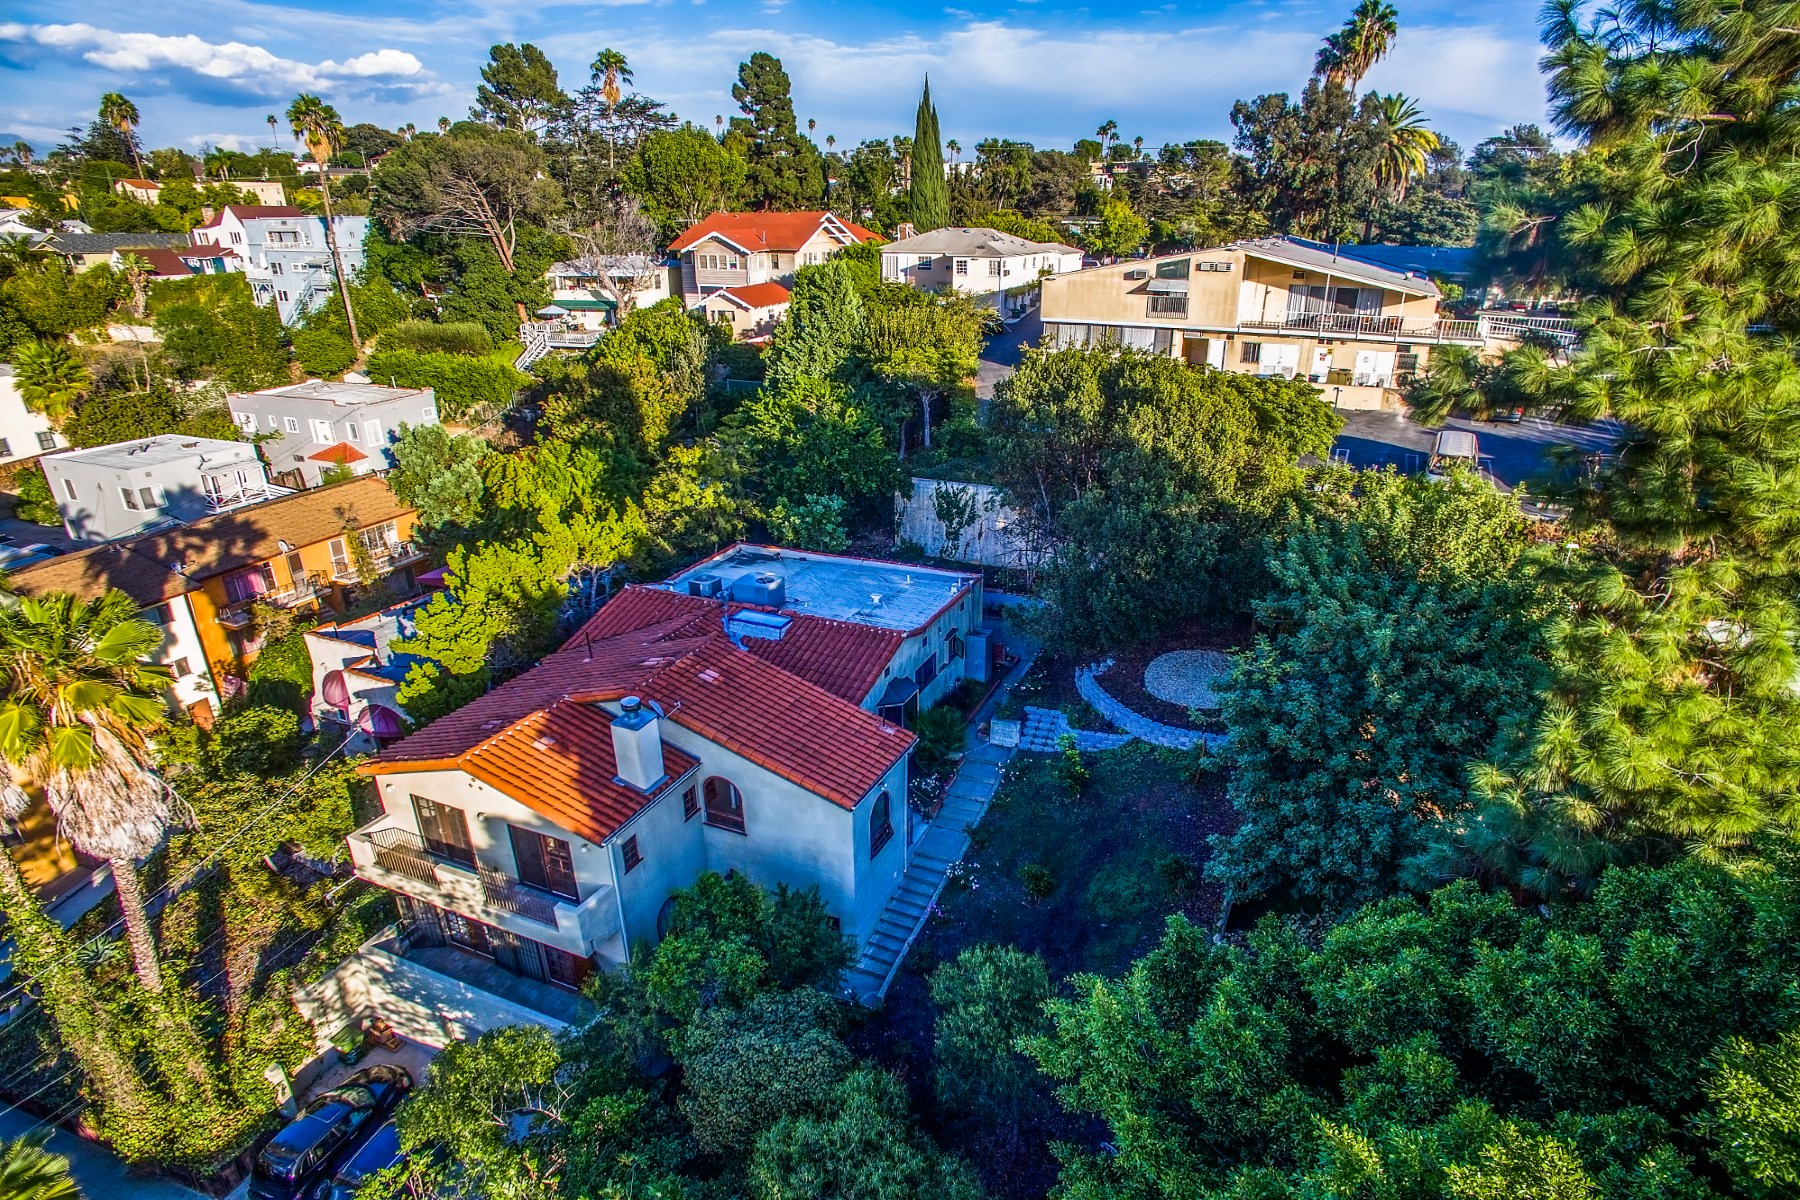 Single Family Home for Sale at 816 Hyperion Avenue Silver Lake, Los Angeles, California 90029 United States